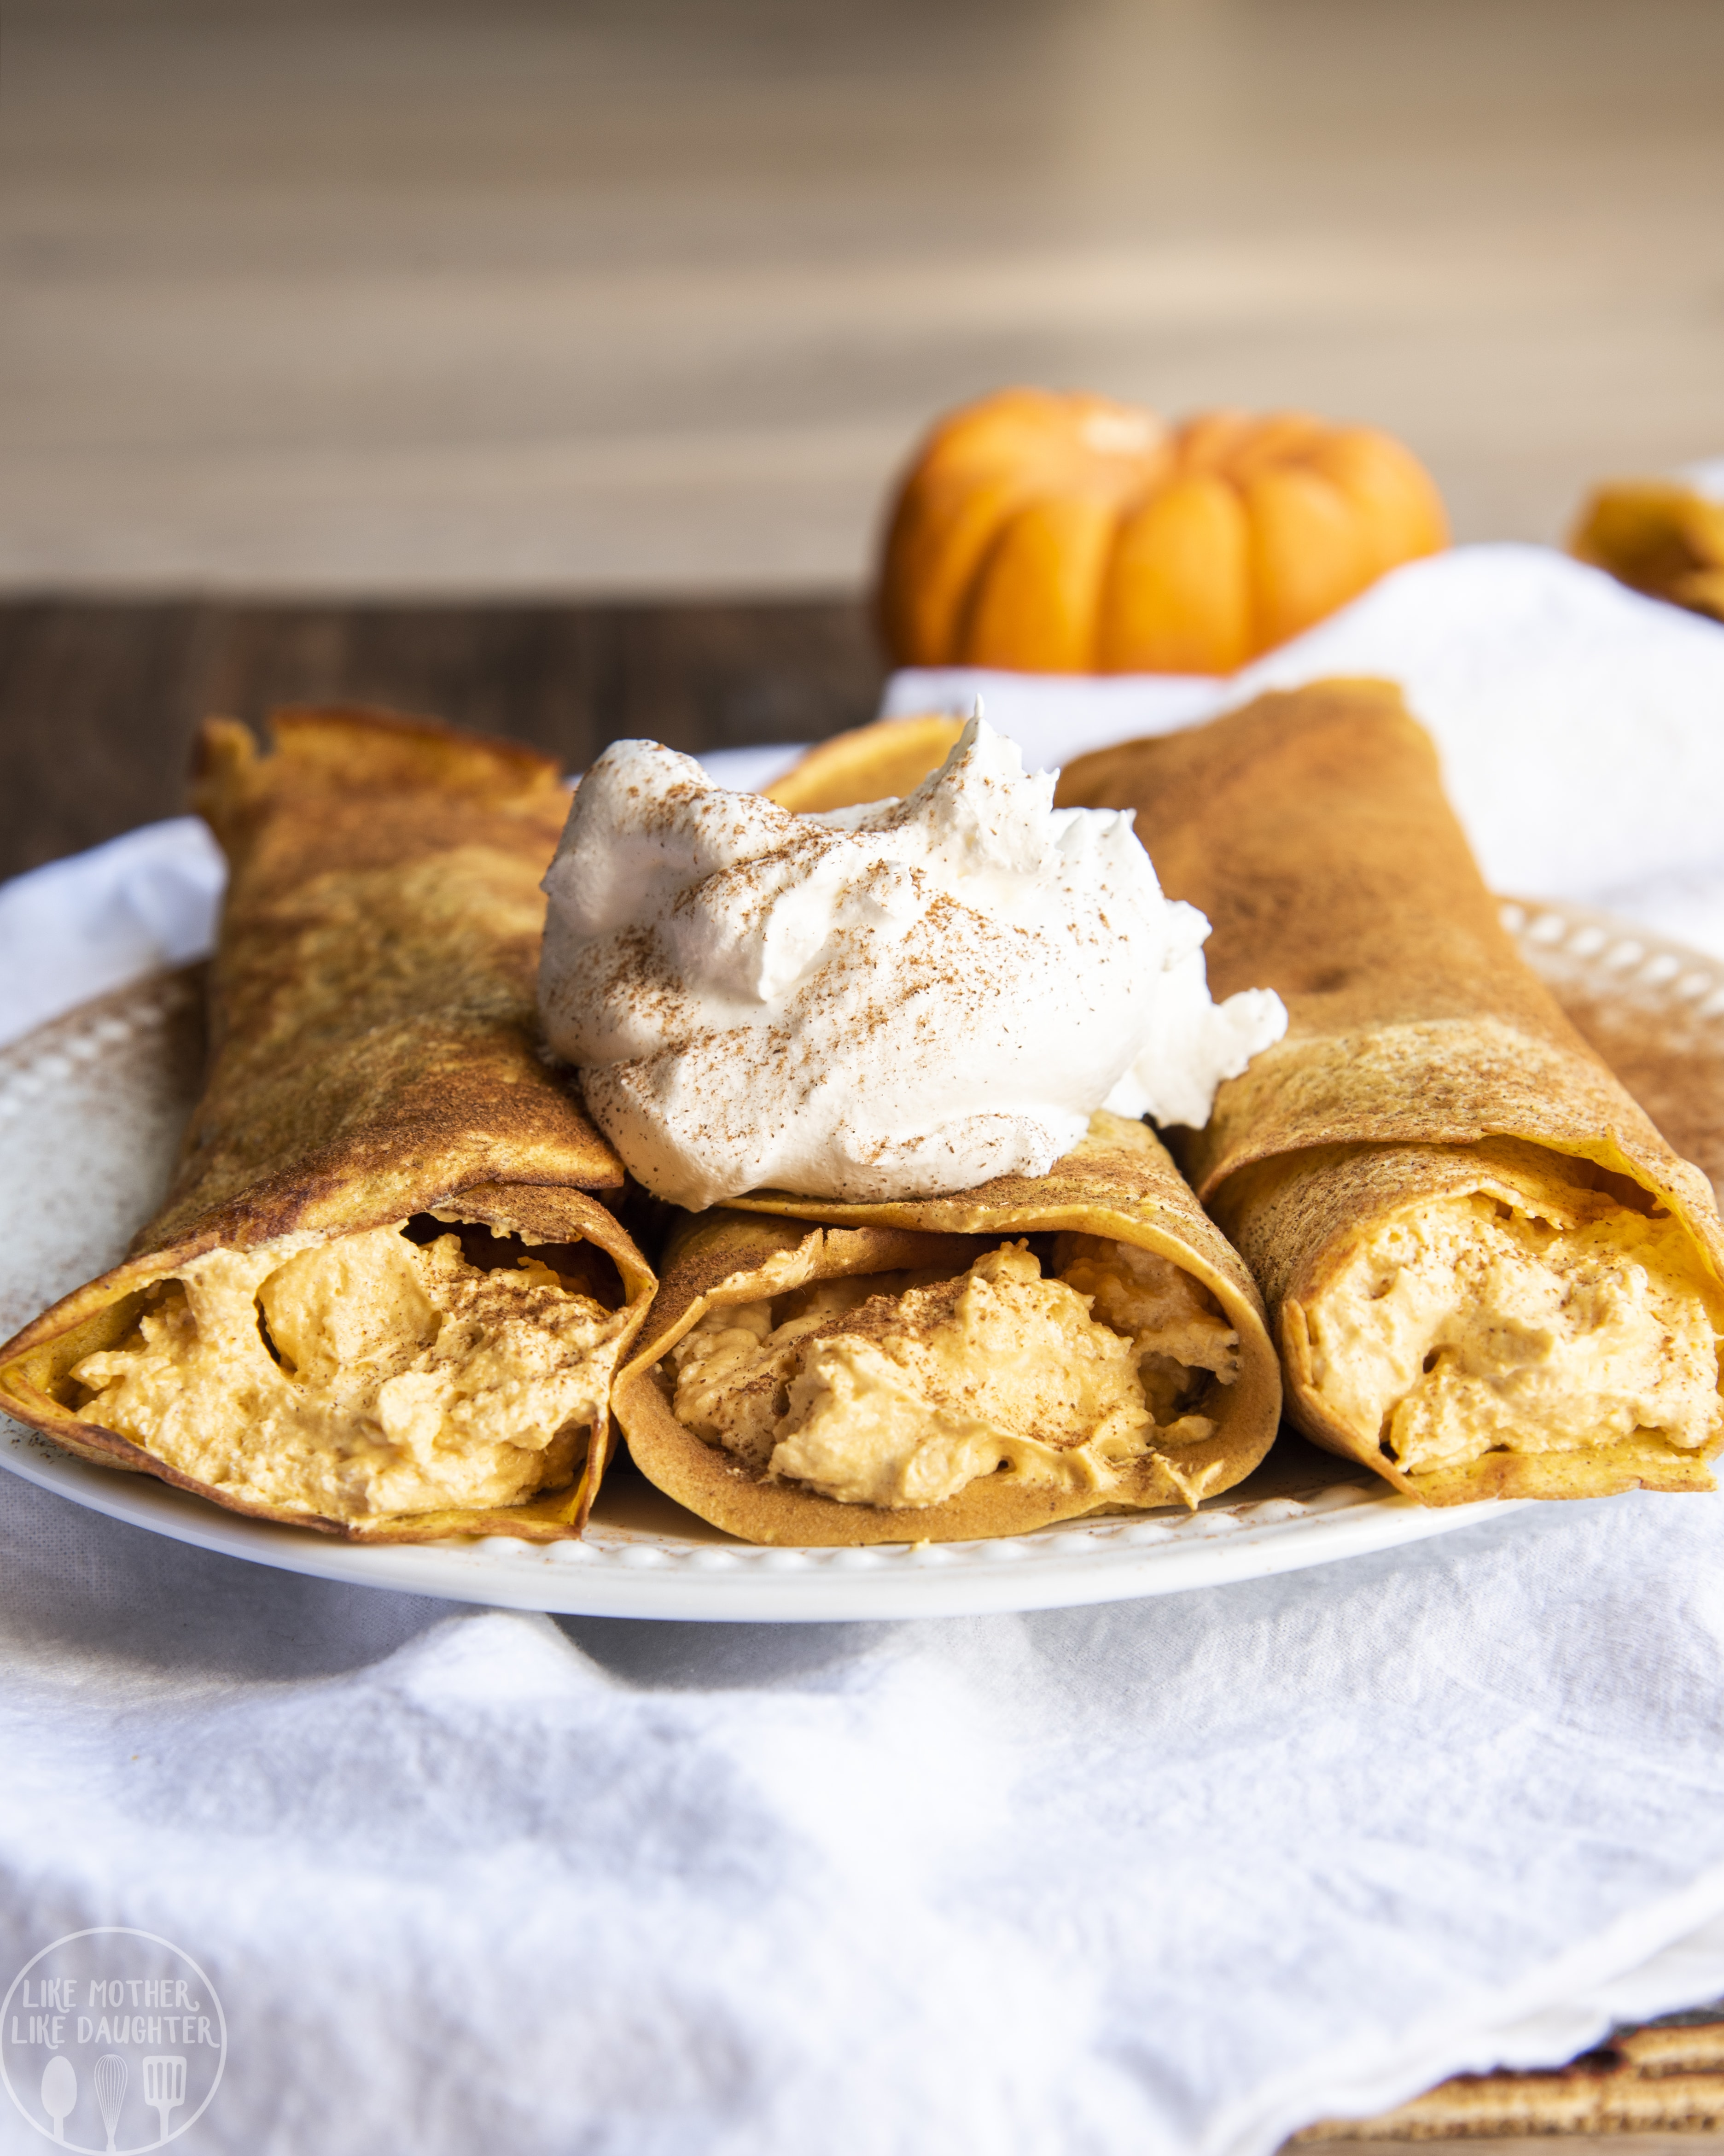 Pumpkin crepes with pumpkin cheesecake filling and topped with whipped cream